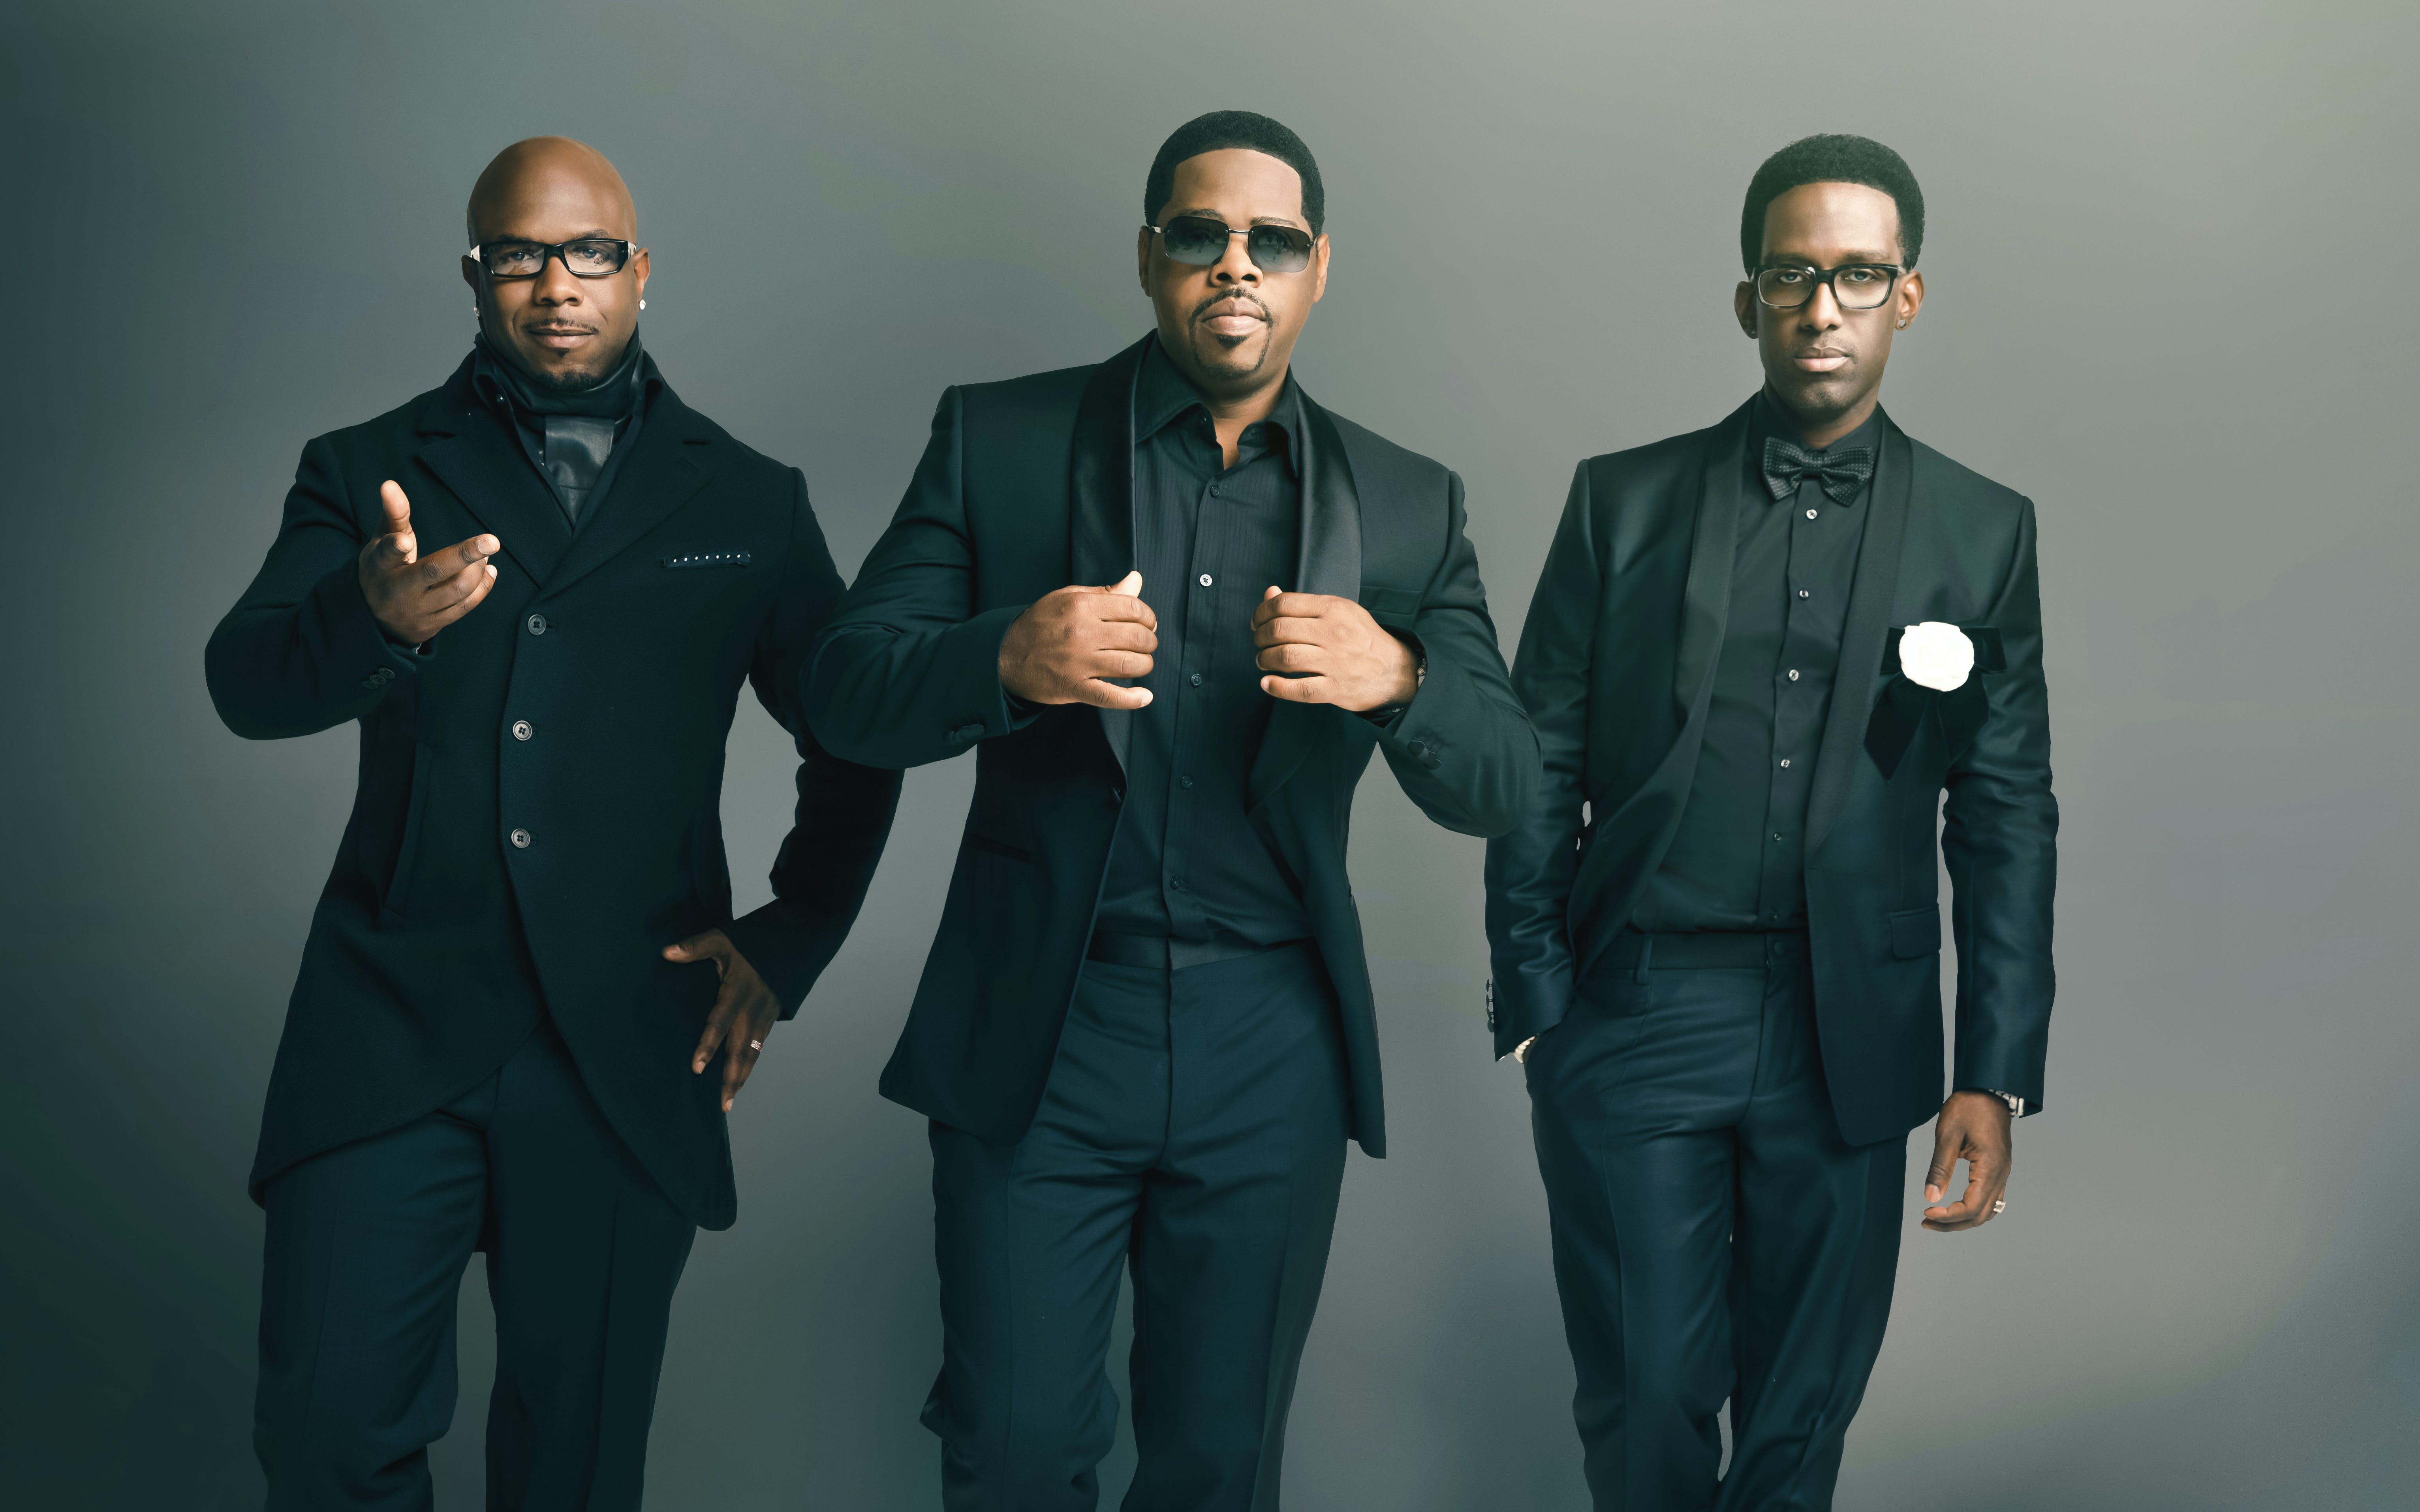 Boyz II Men - R&B Musical